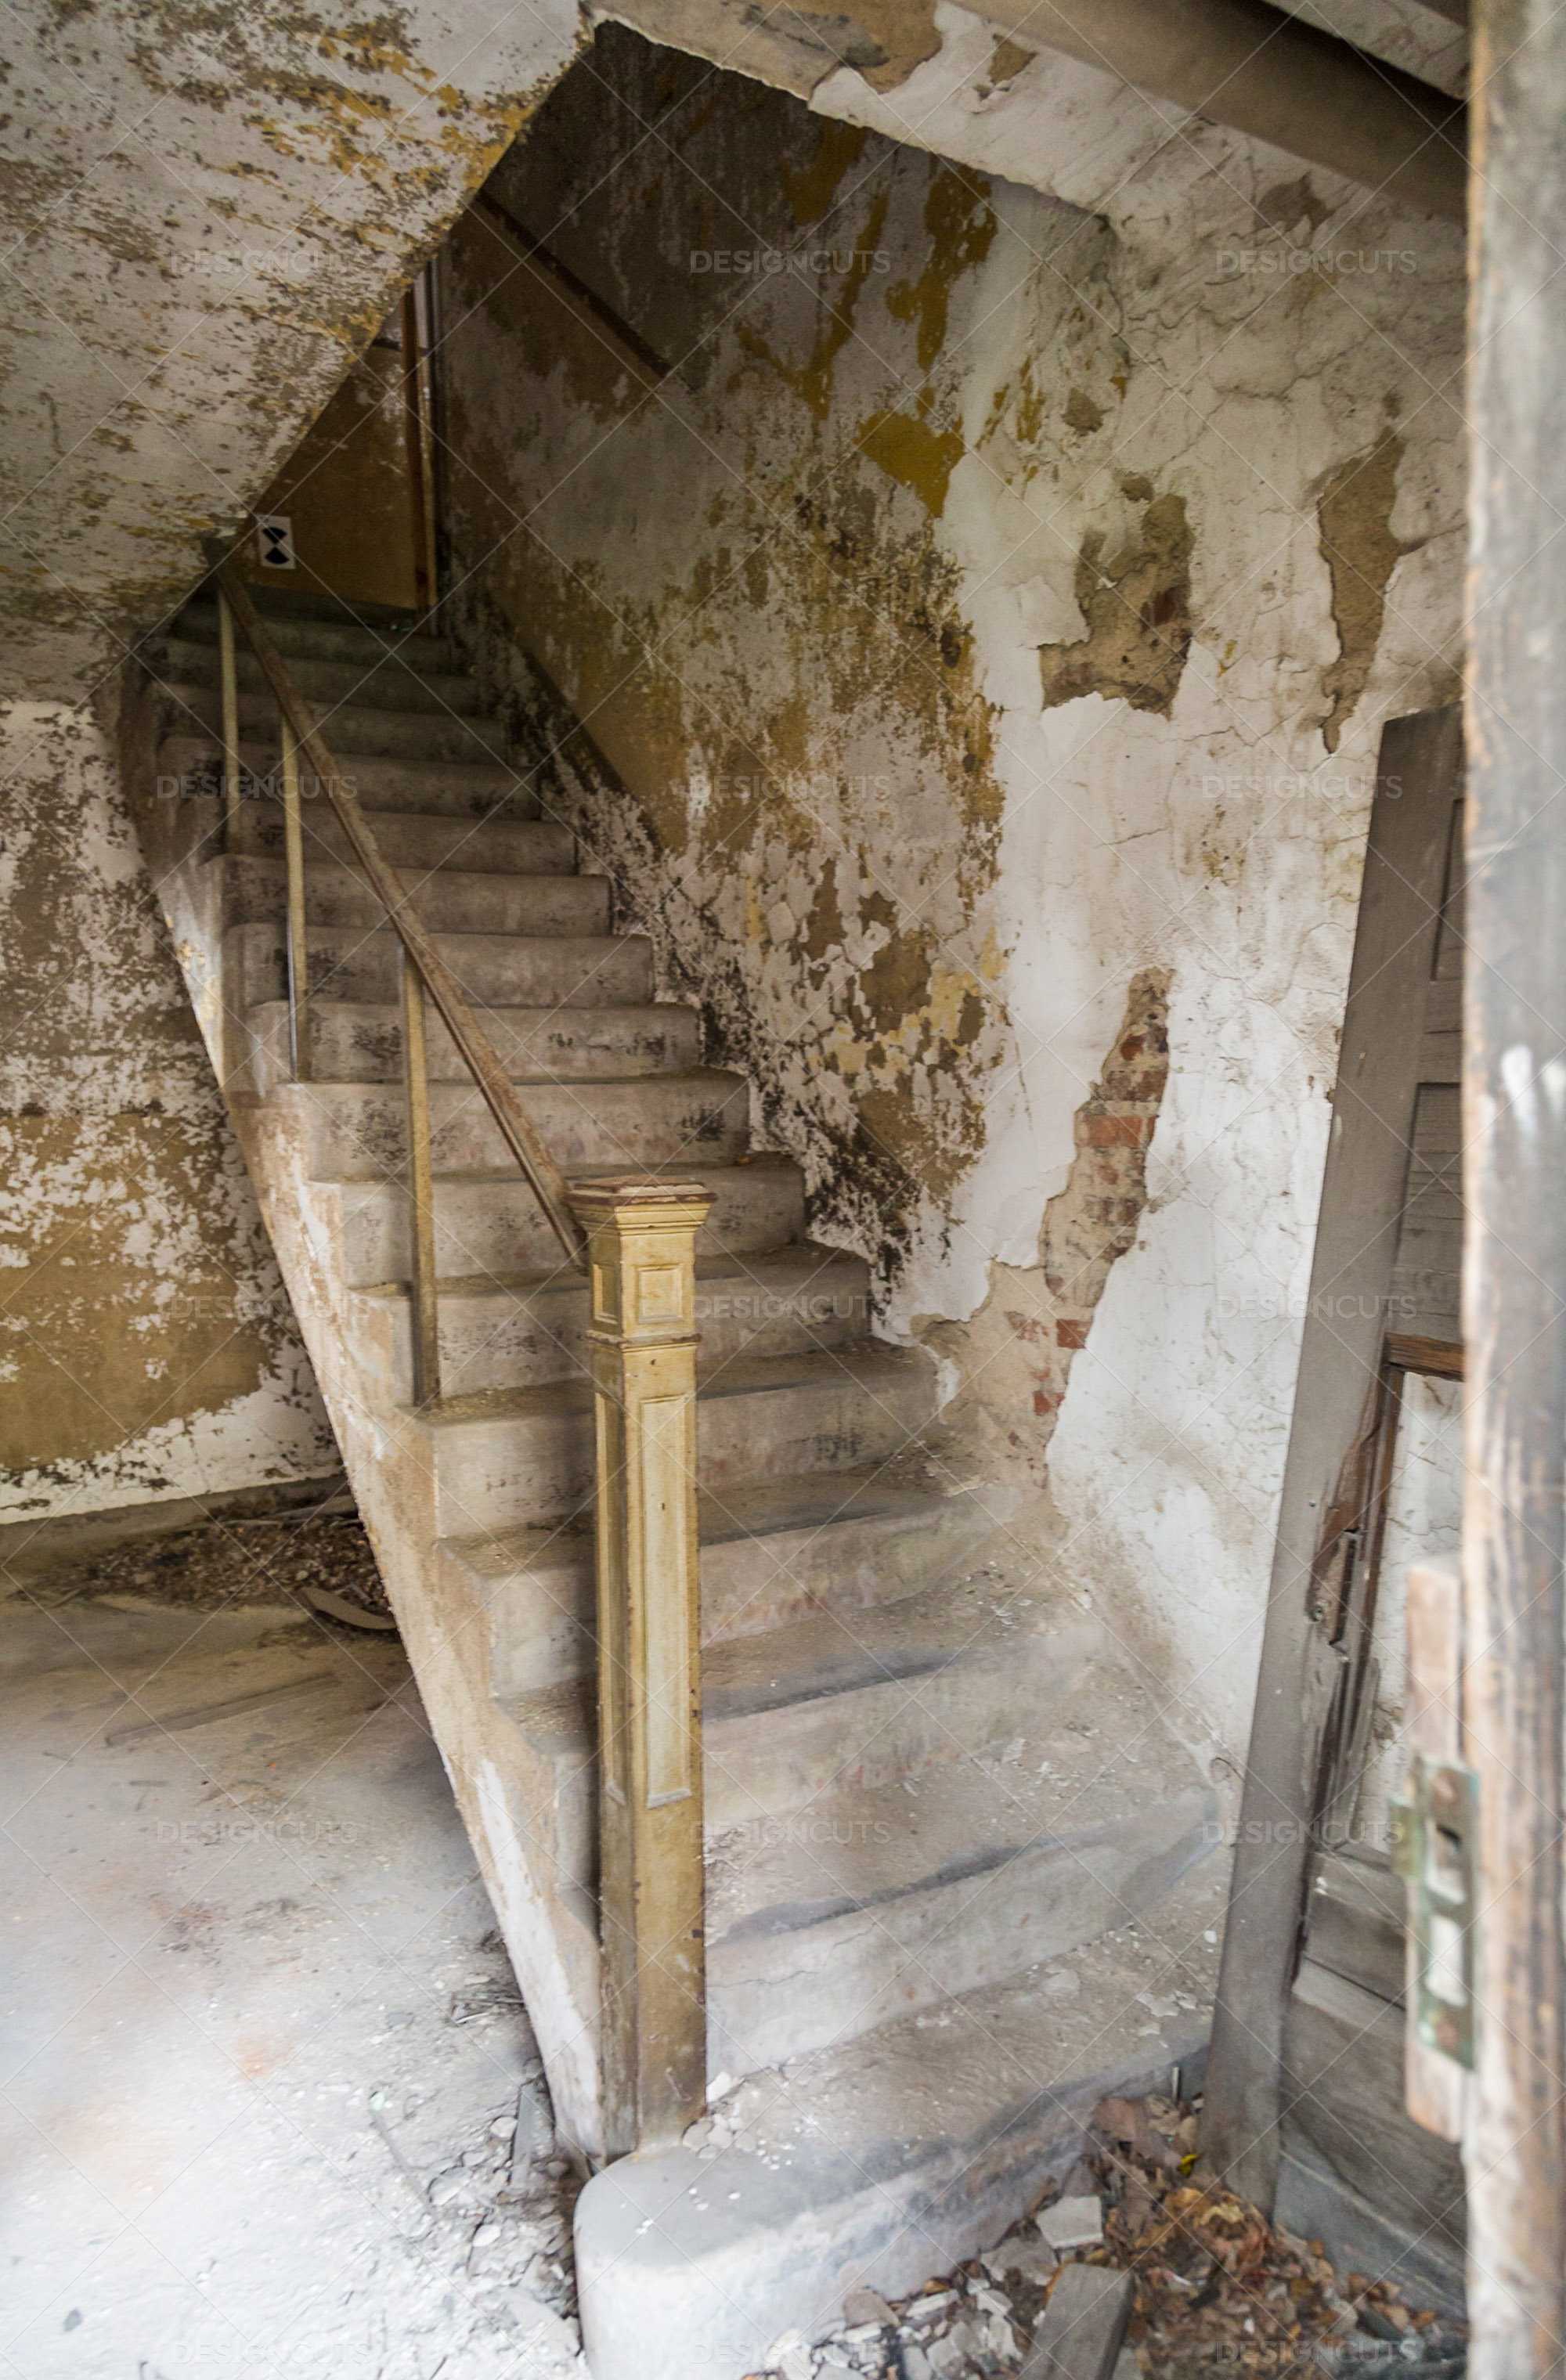 A Deserted Stairway In Ellis Island Immigration Hospital